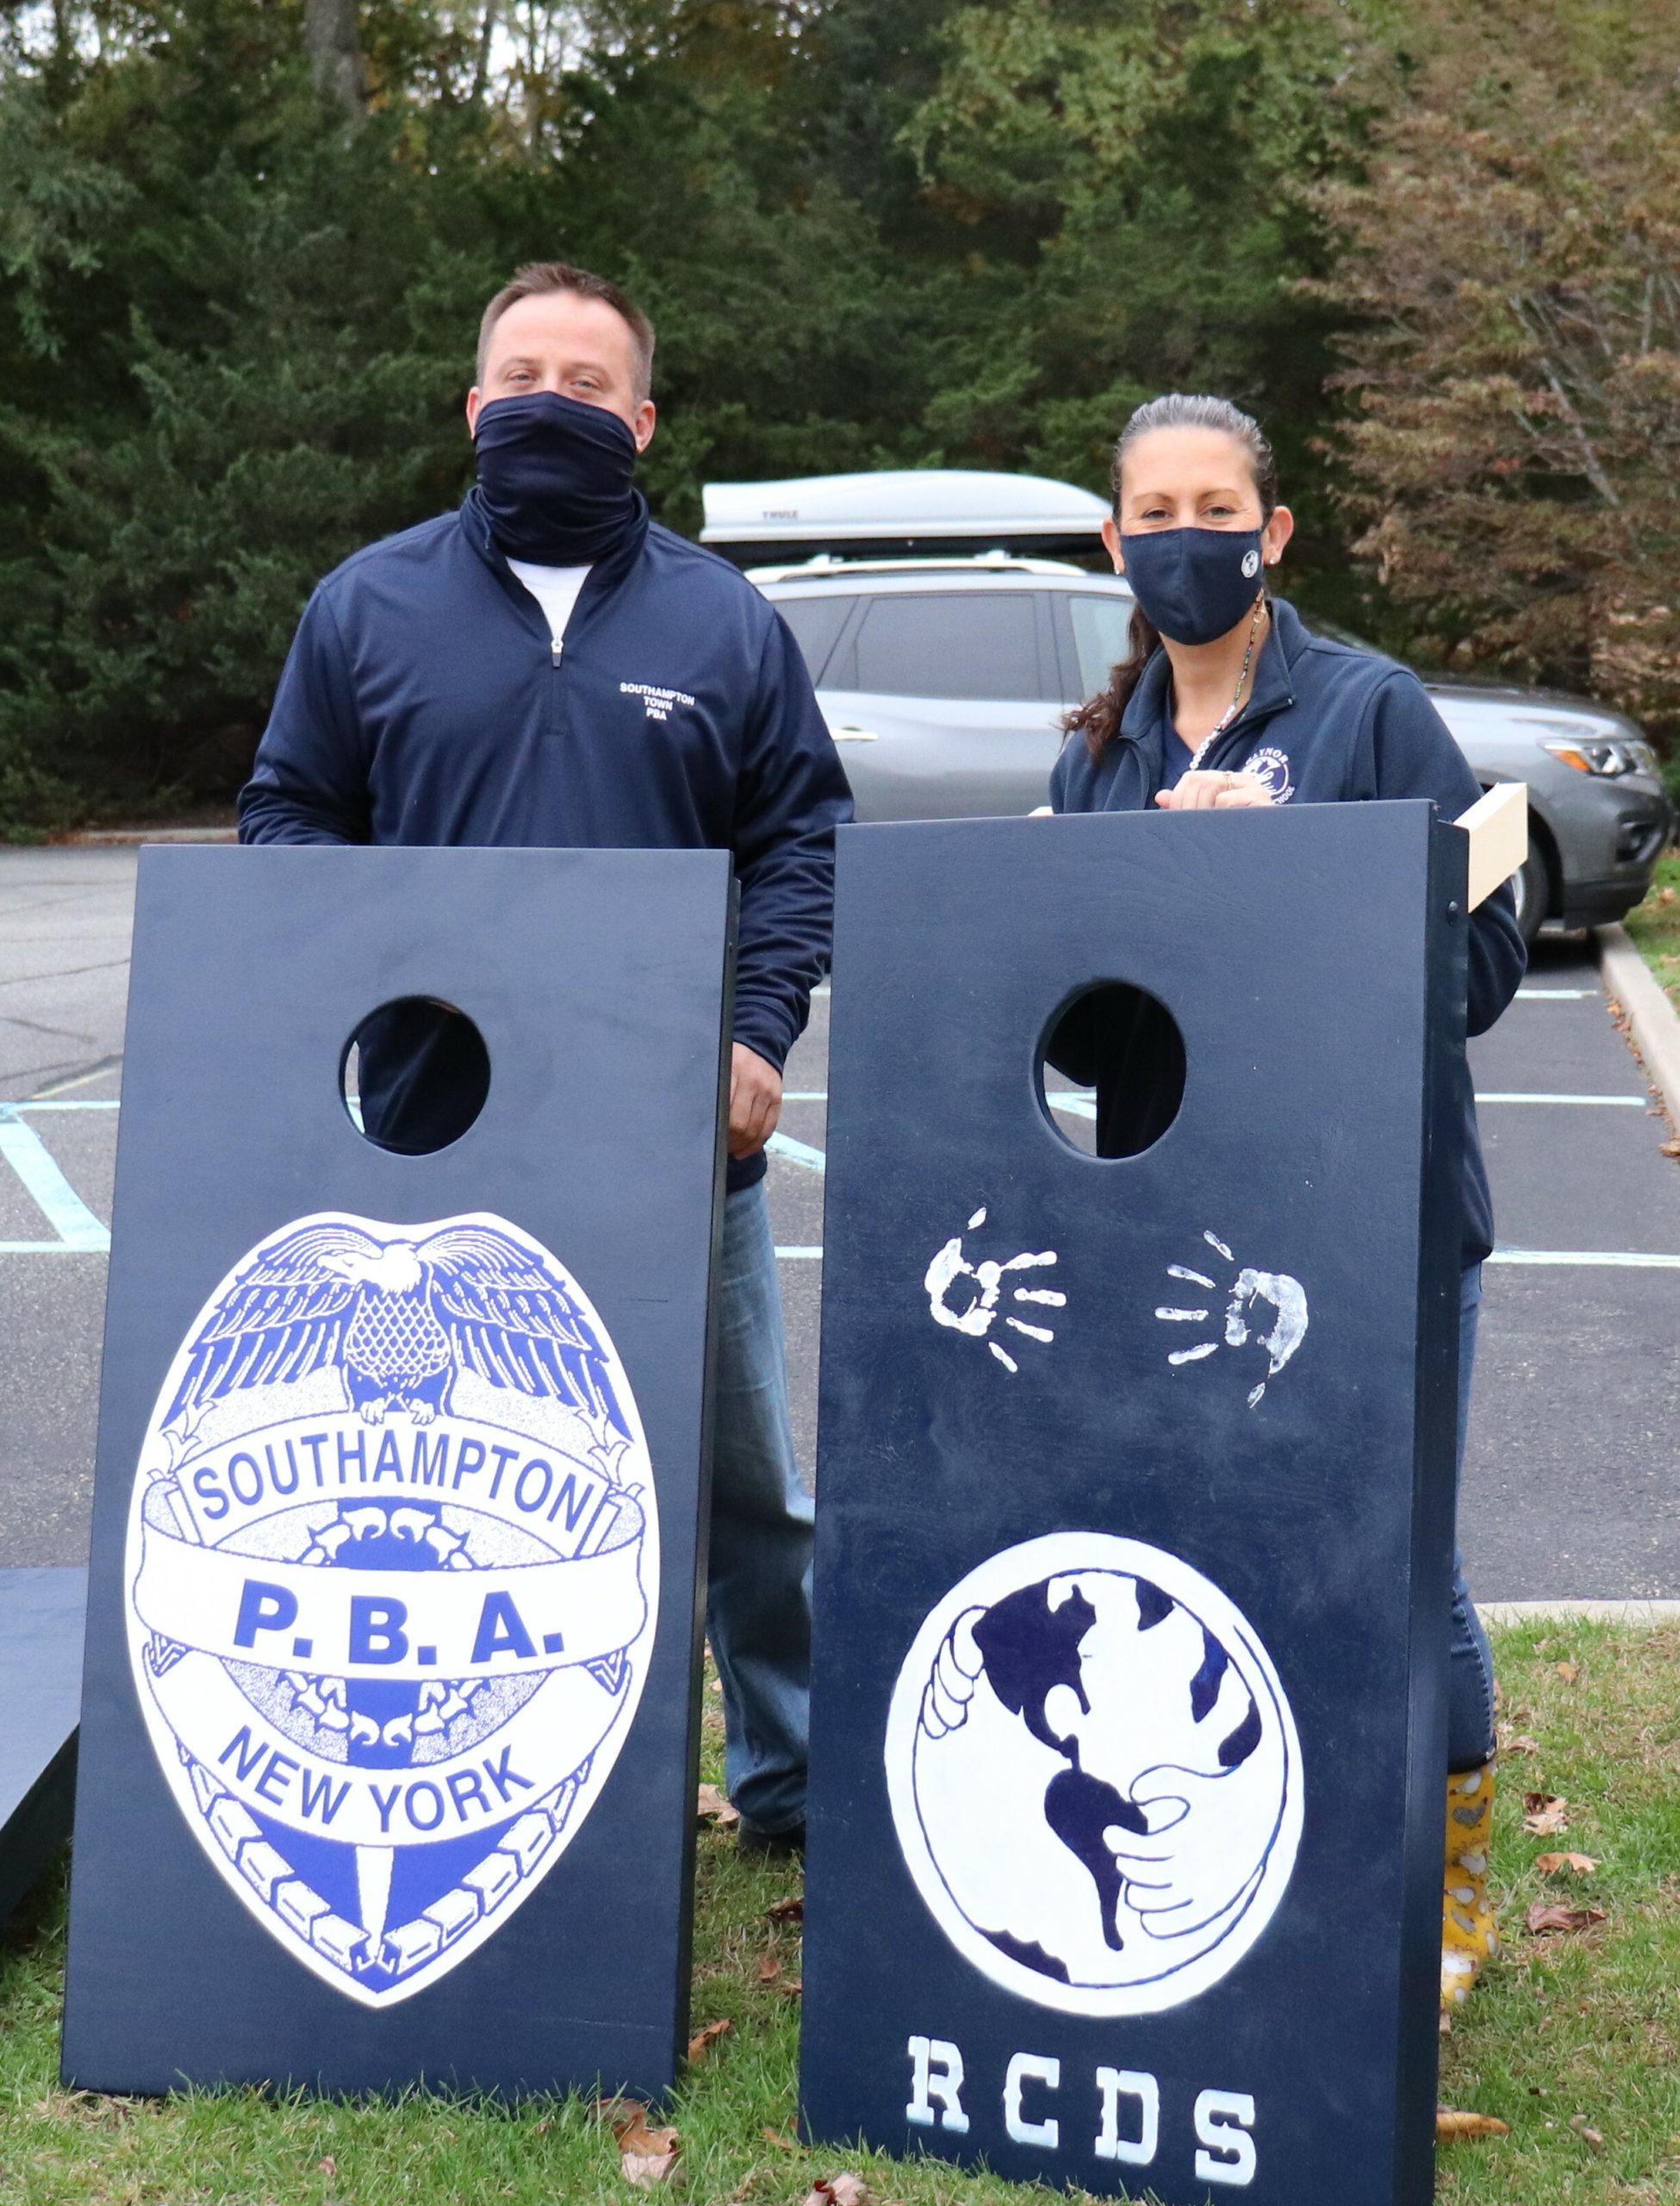 Raynor Country Day School Principal Kerry Coonan and Southampton Town PBA President Erik Bretweiser with the school's new cornhole boards.